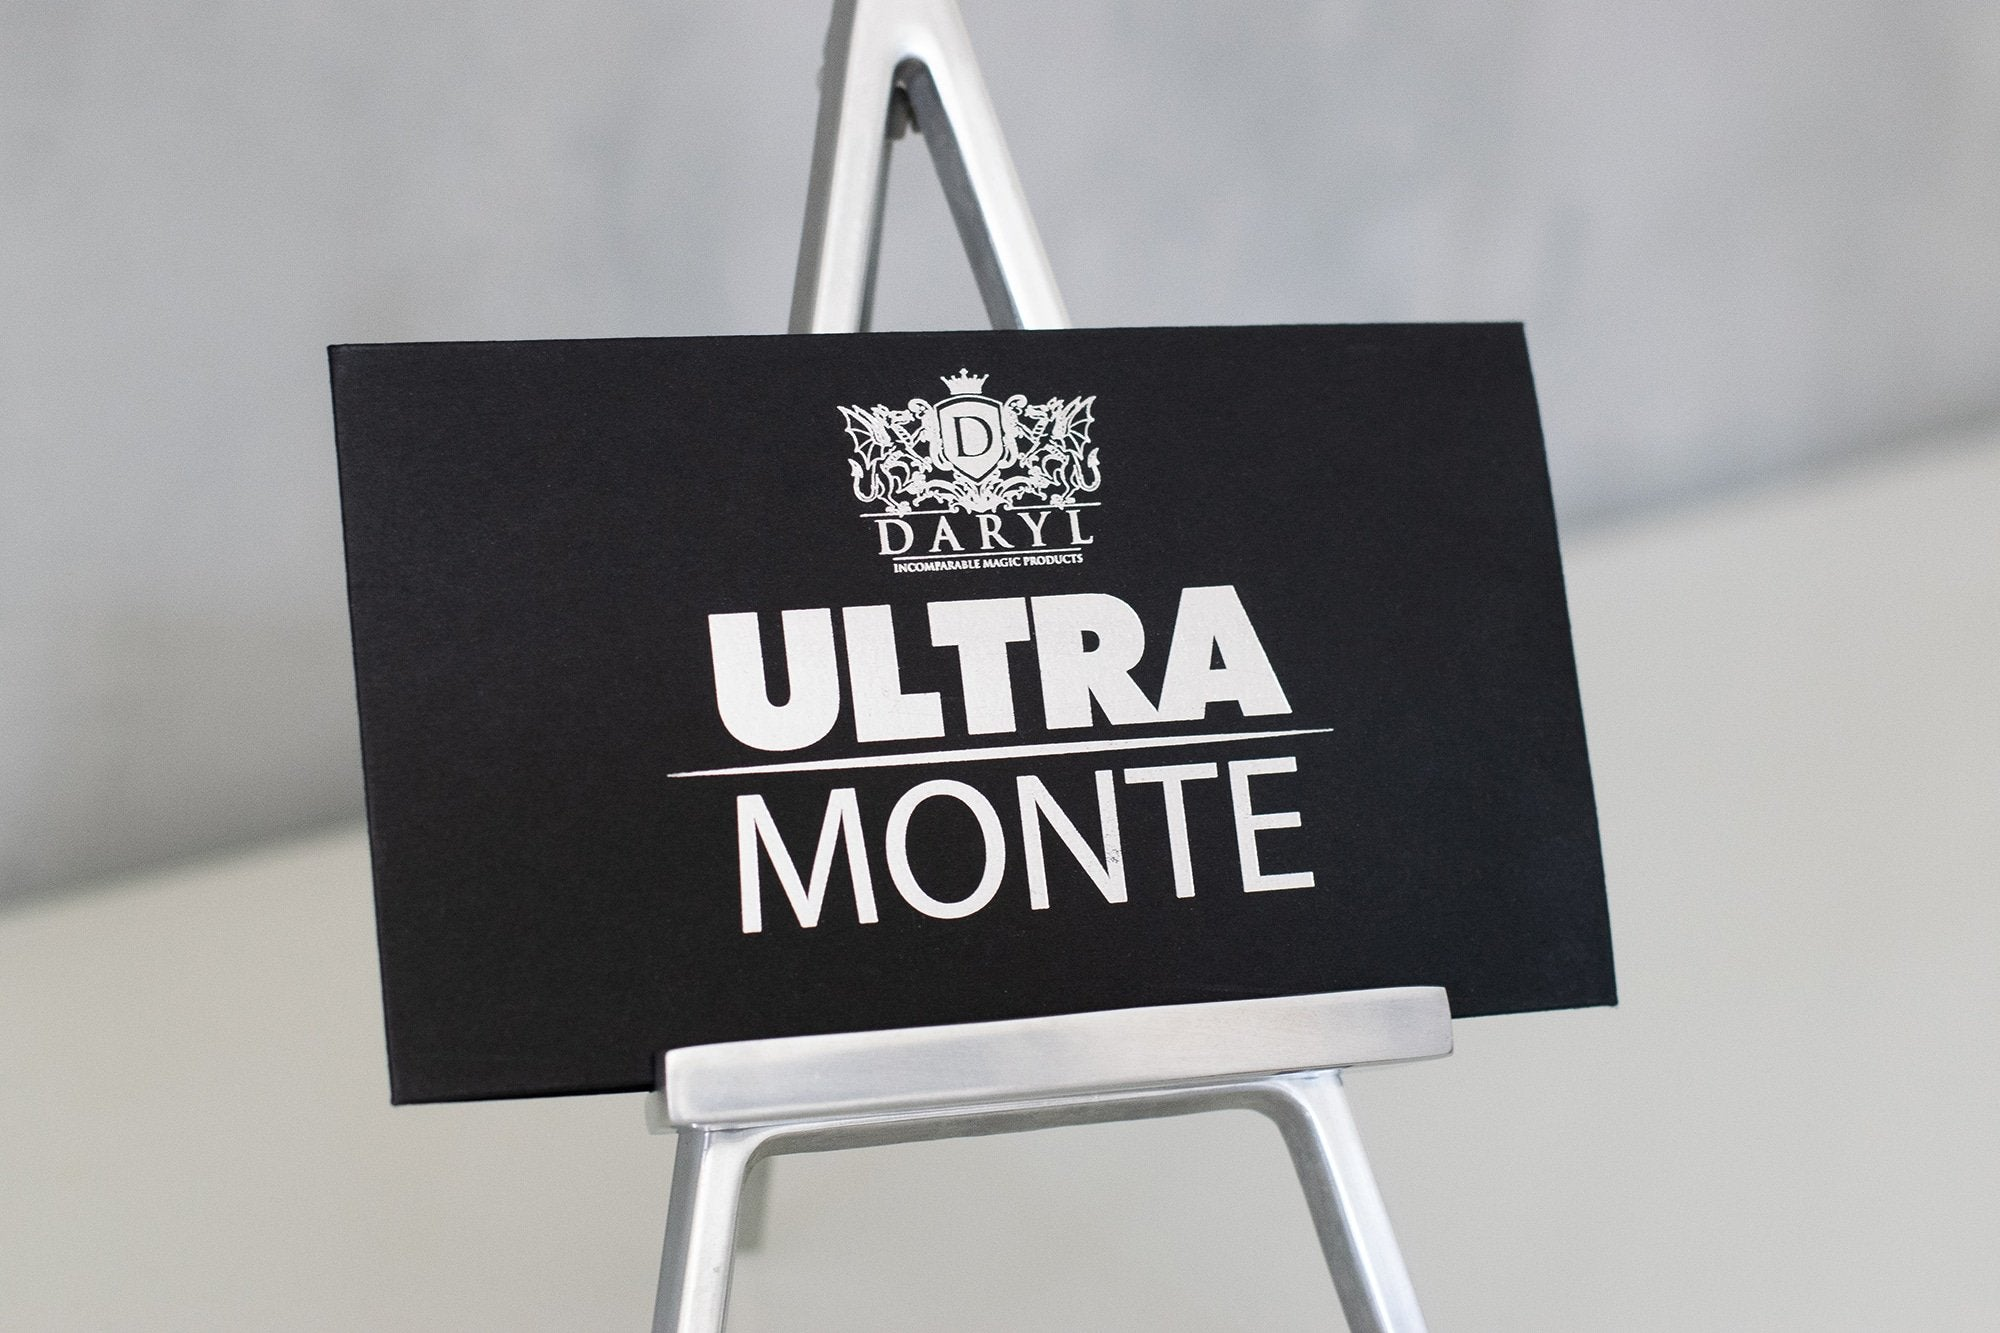 Ultra Monte by DARYL Galerie